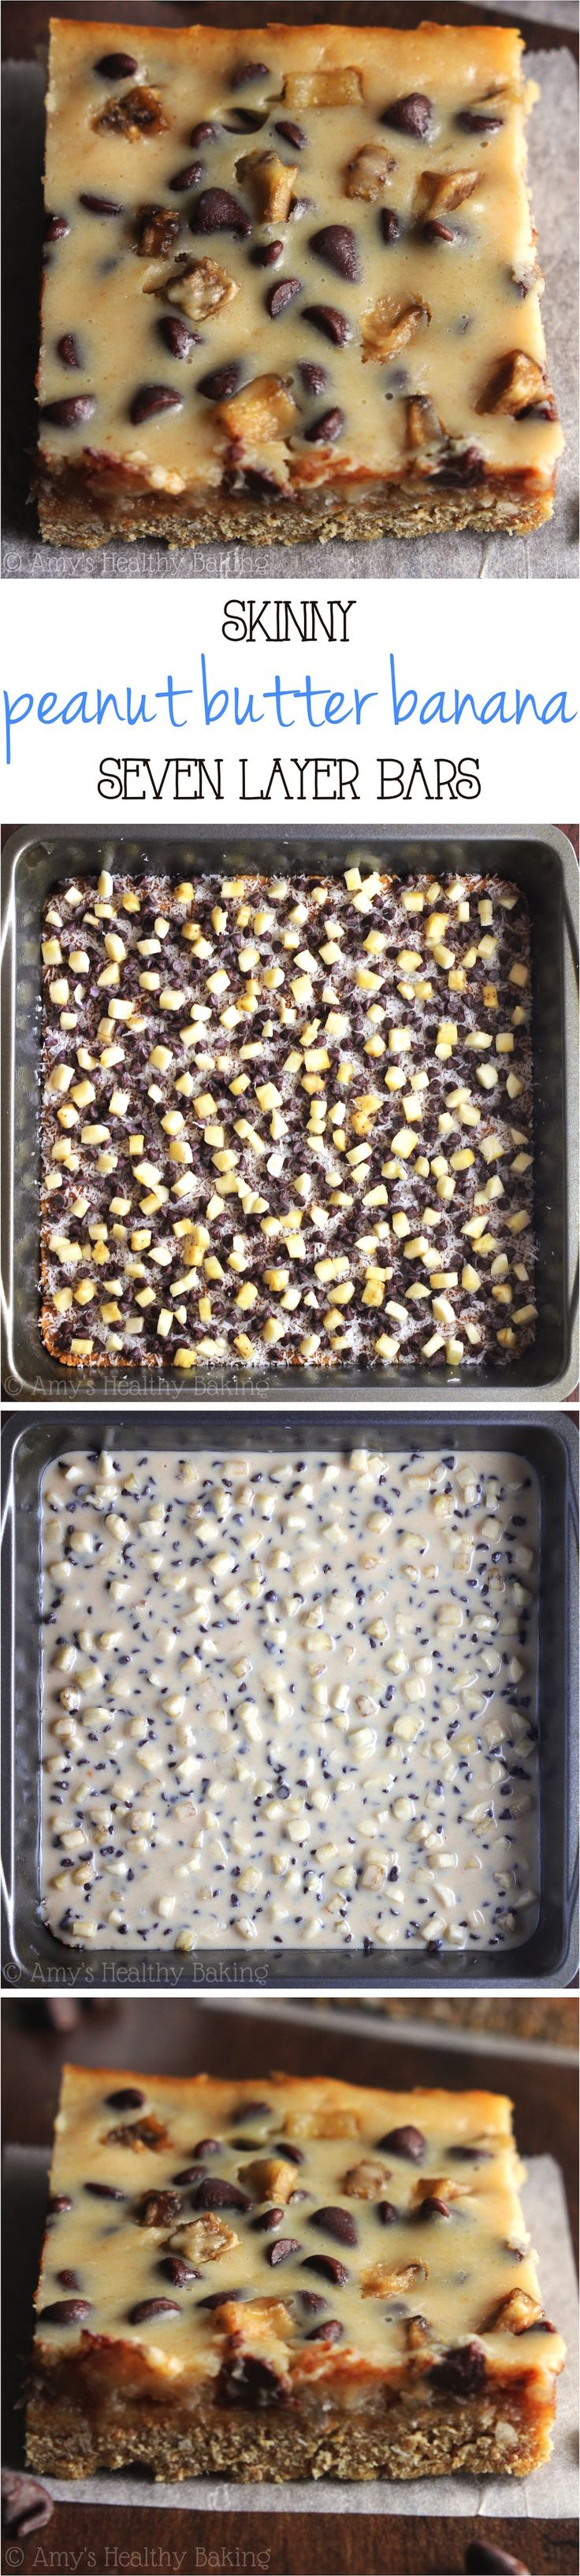 Skinny Peanut Butter Banana Seven Layer Bars – with 3 simple swaps, these magic bars have all of the decadence but NONE of the